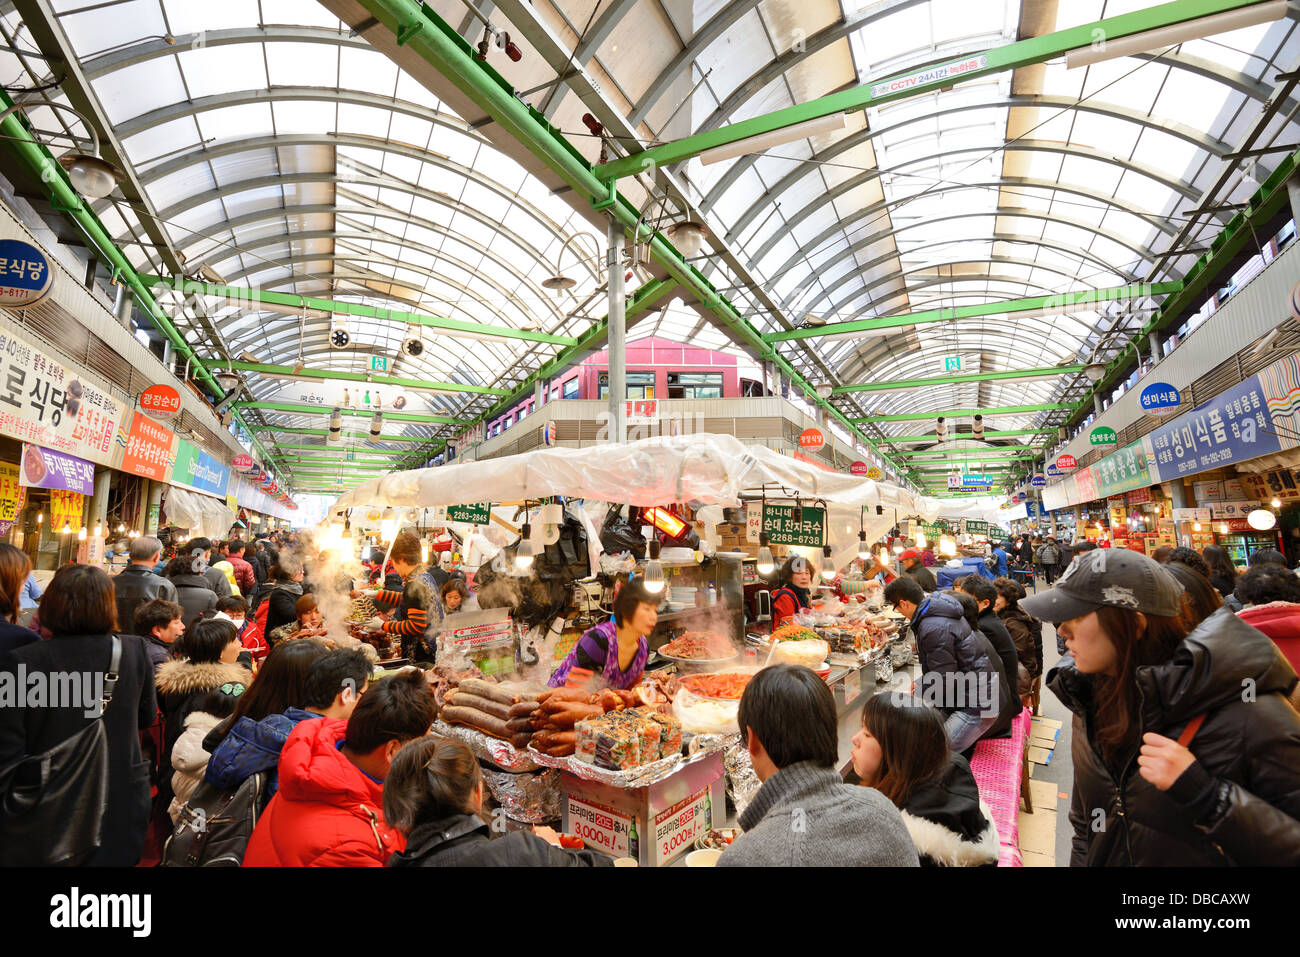 Gwangjang Market in Seoul, South Korea. - Stock Image